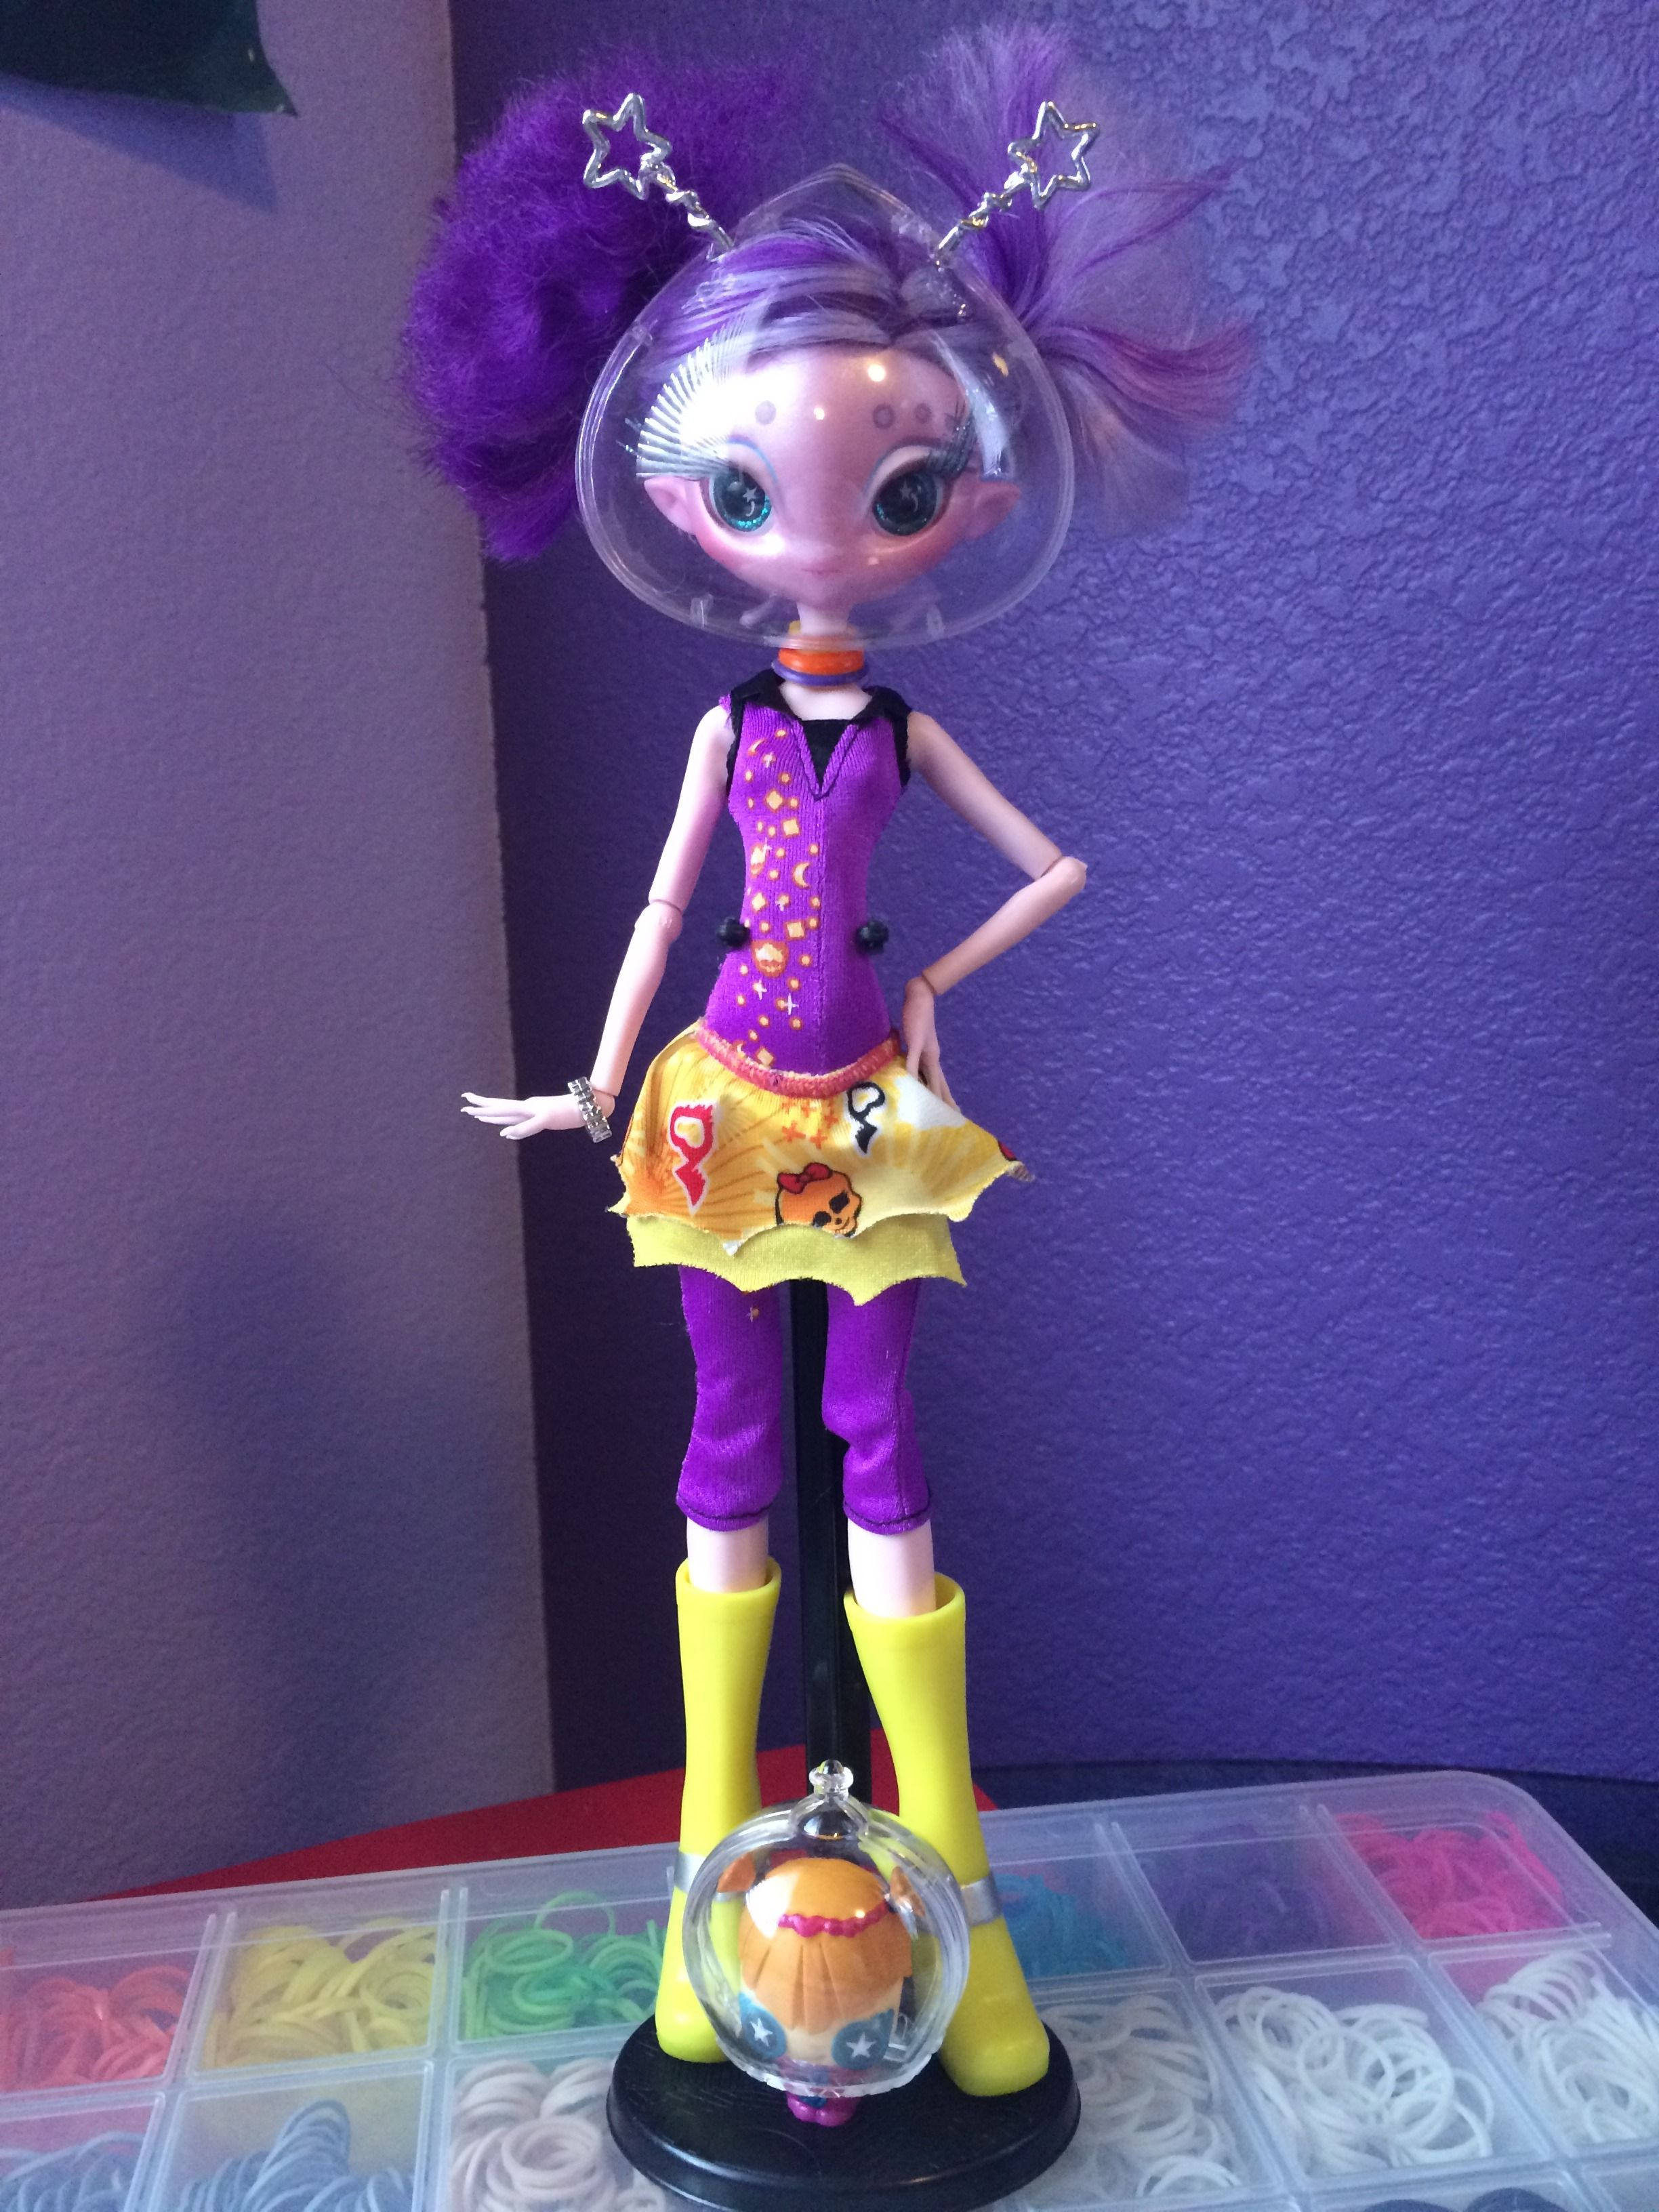 Bambole Fashion Lovely Novi Stars Doll Bambola Mae Tallick Alien Original Monster